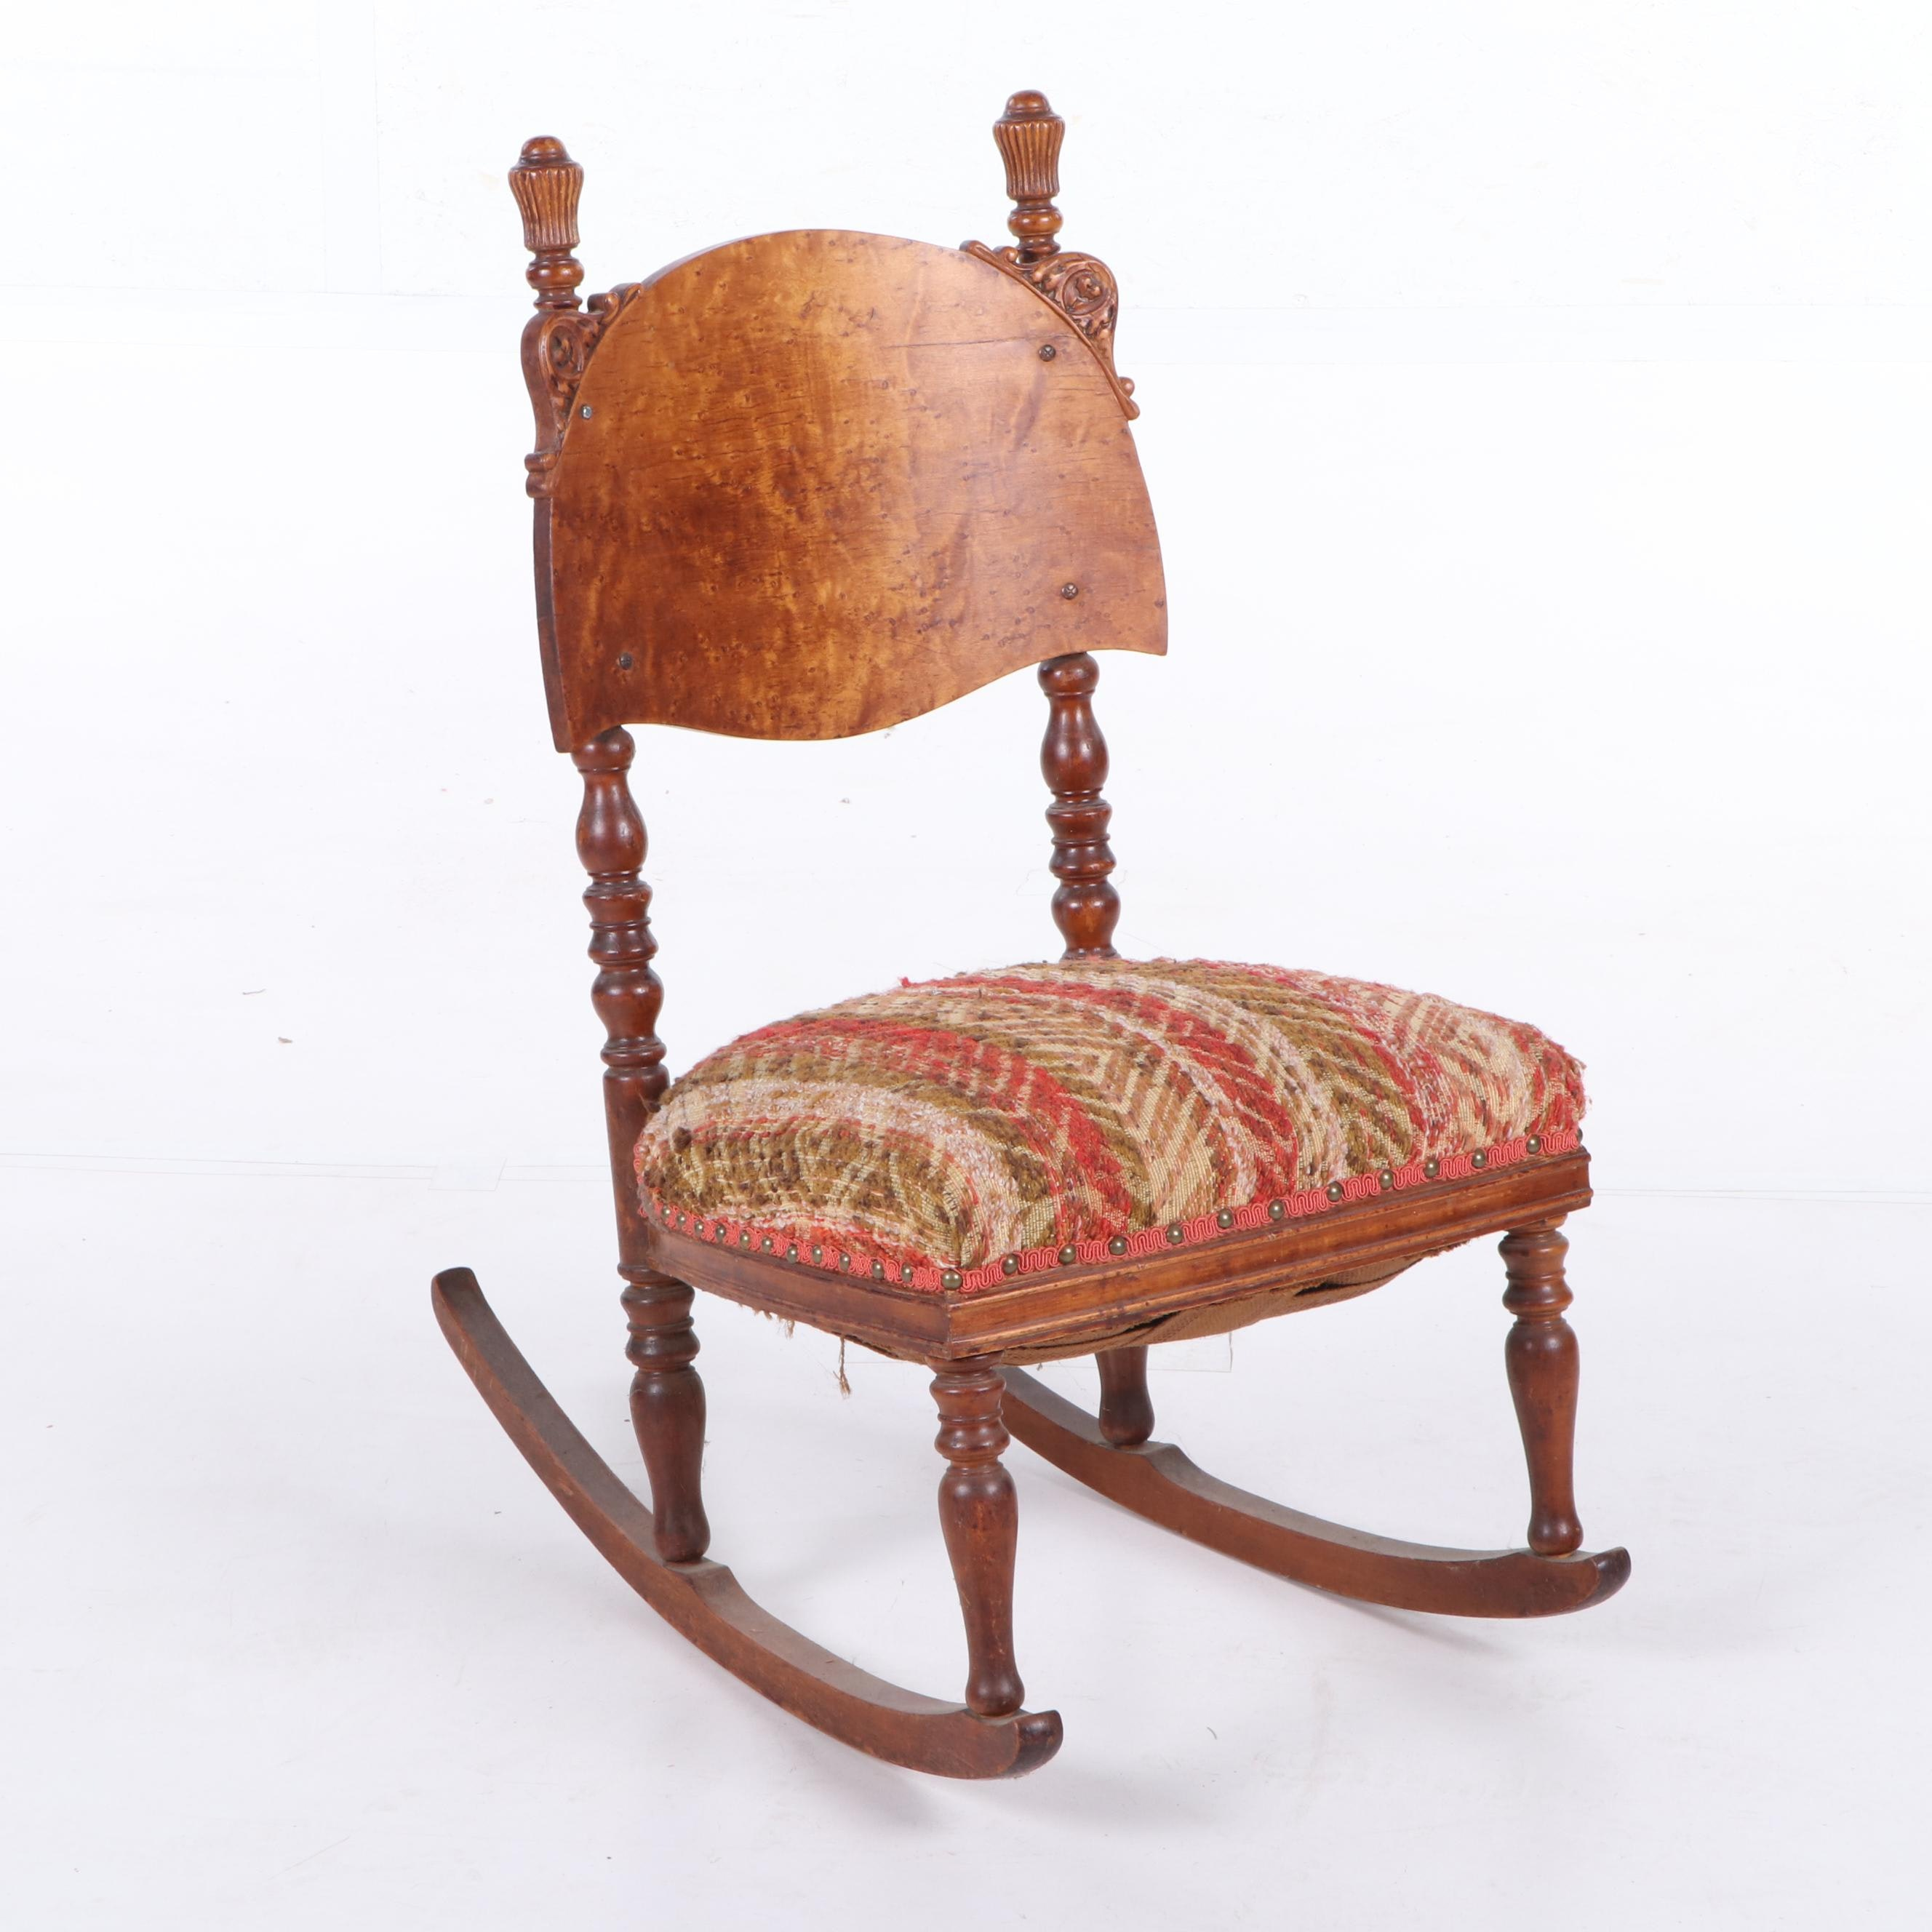 Mixed Wood Rocking Chair, Late 19th Century